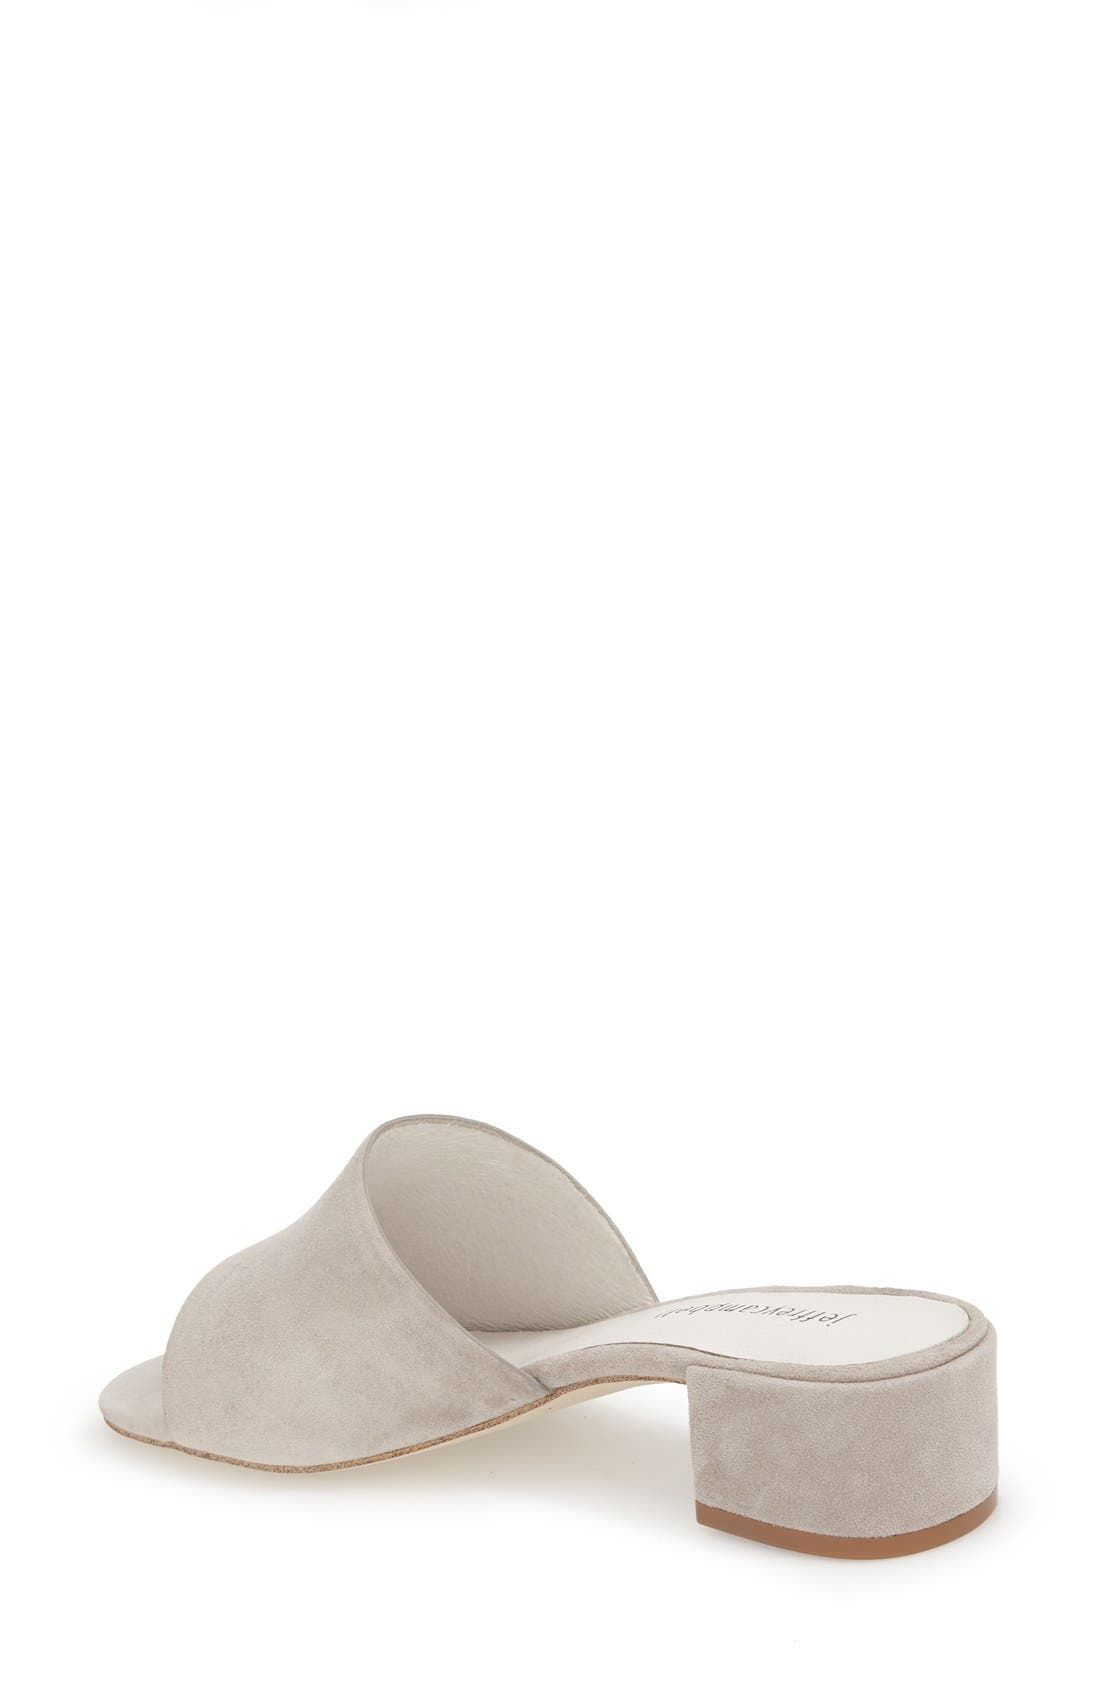 'Beaton' Slide Sandal,                             Alternate thumbnail 14, color,